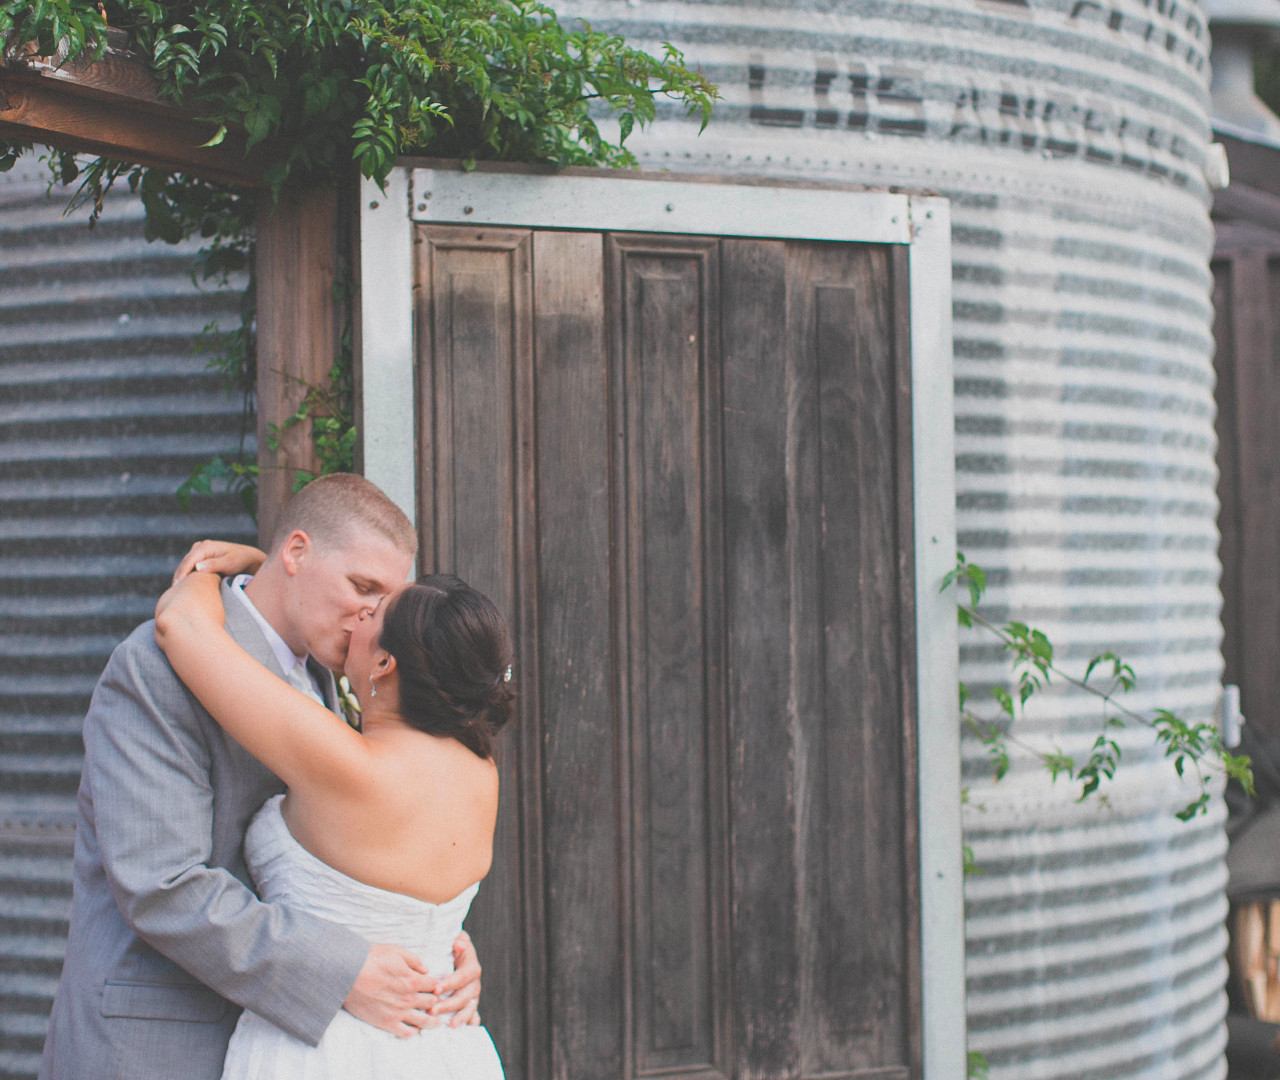 melissa jean photography - edwards barn